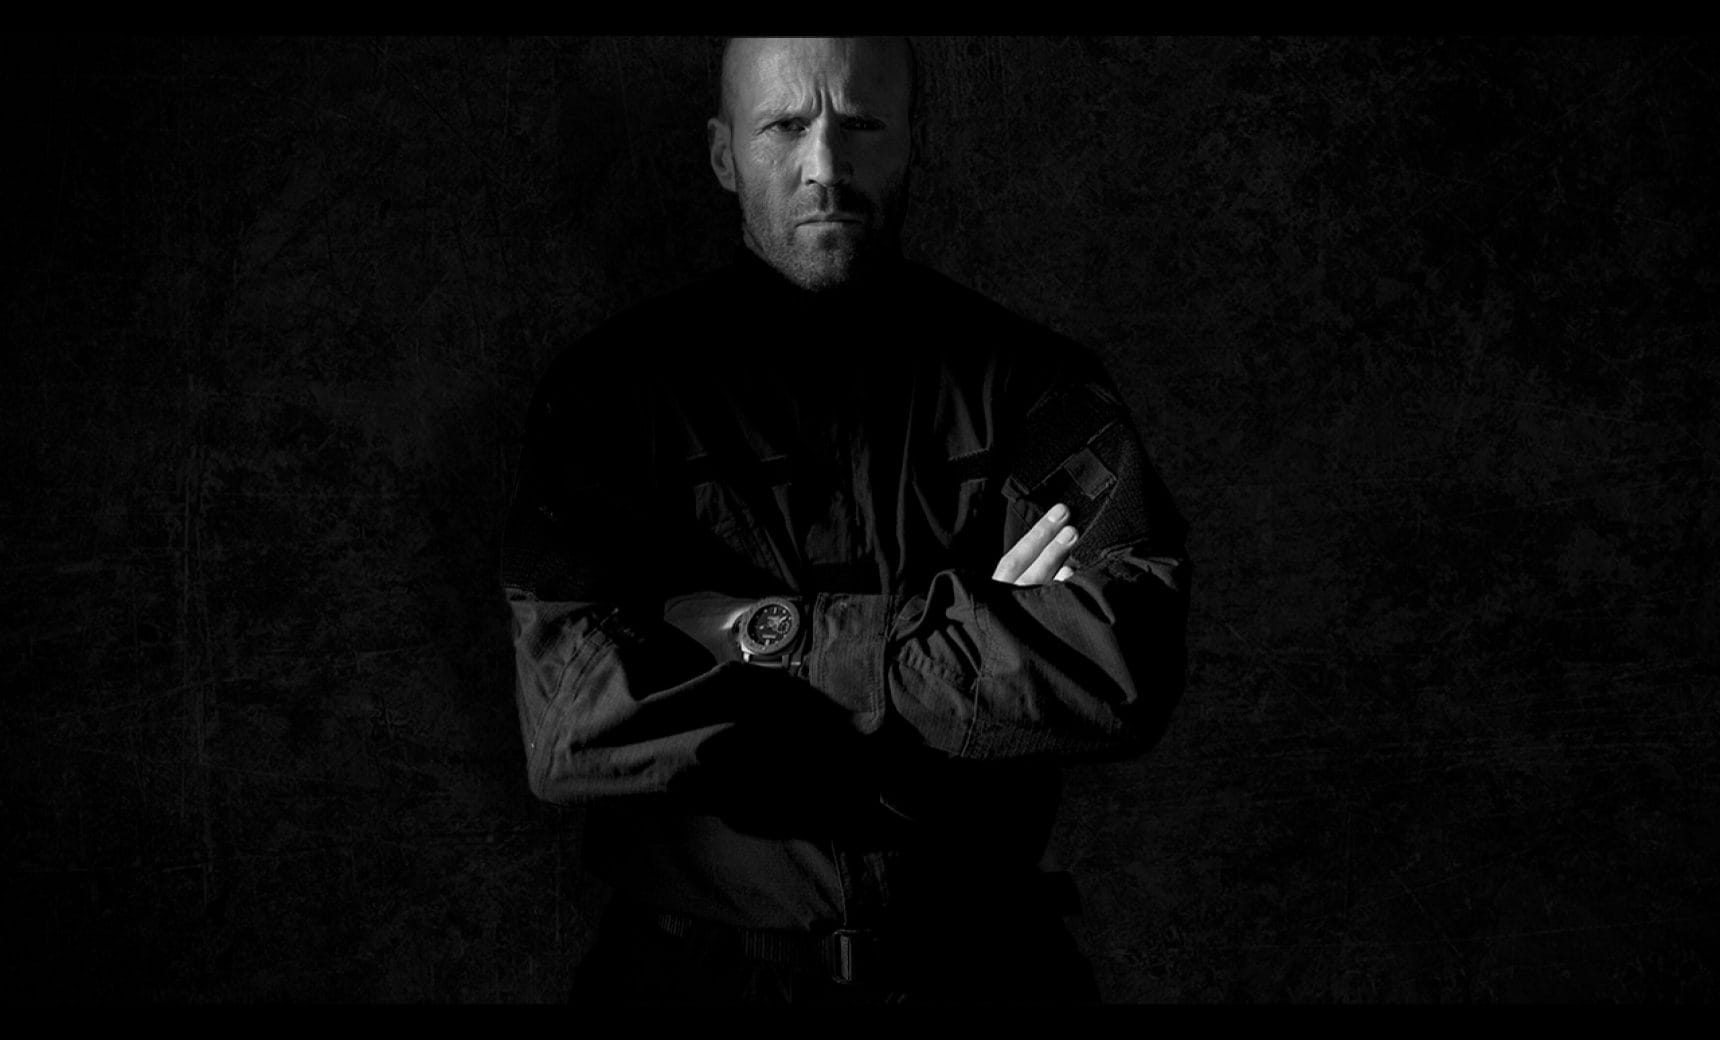 WATCH JASON STATHAM'S WRIST IN HIS NEXT MOVIE, PANERAI WILL BE THERE